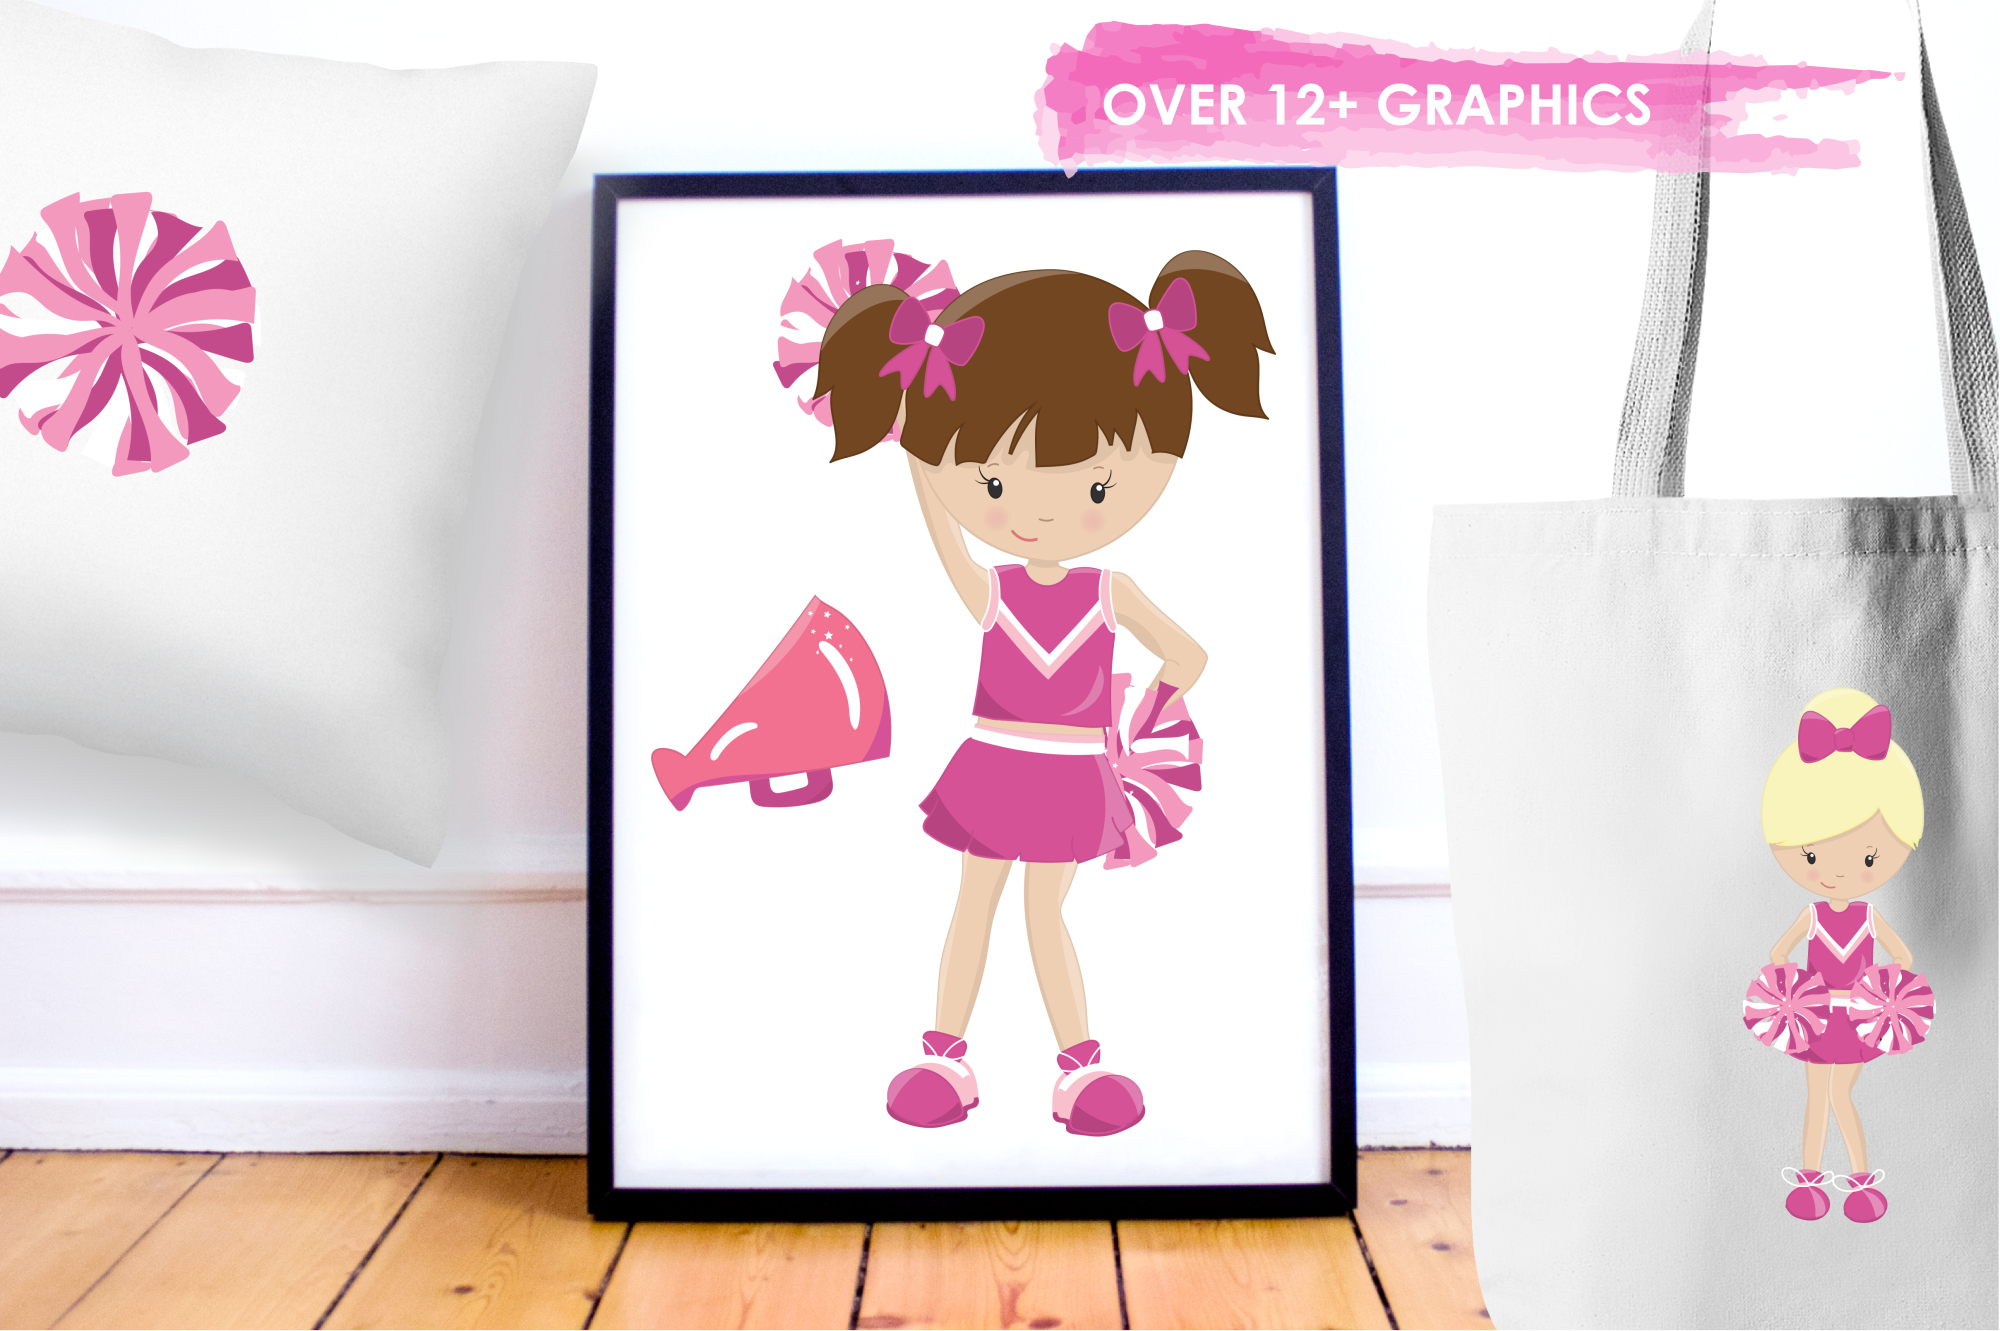 Cheerleaders graphics and illustrations example image 5